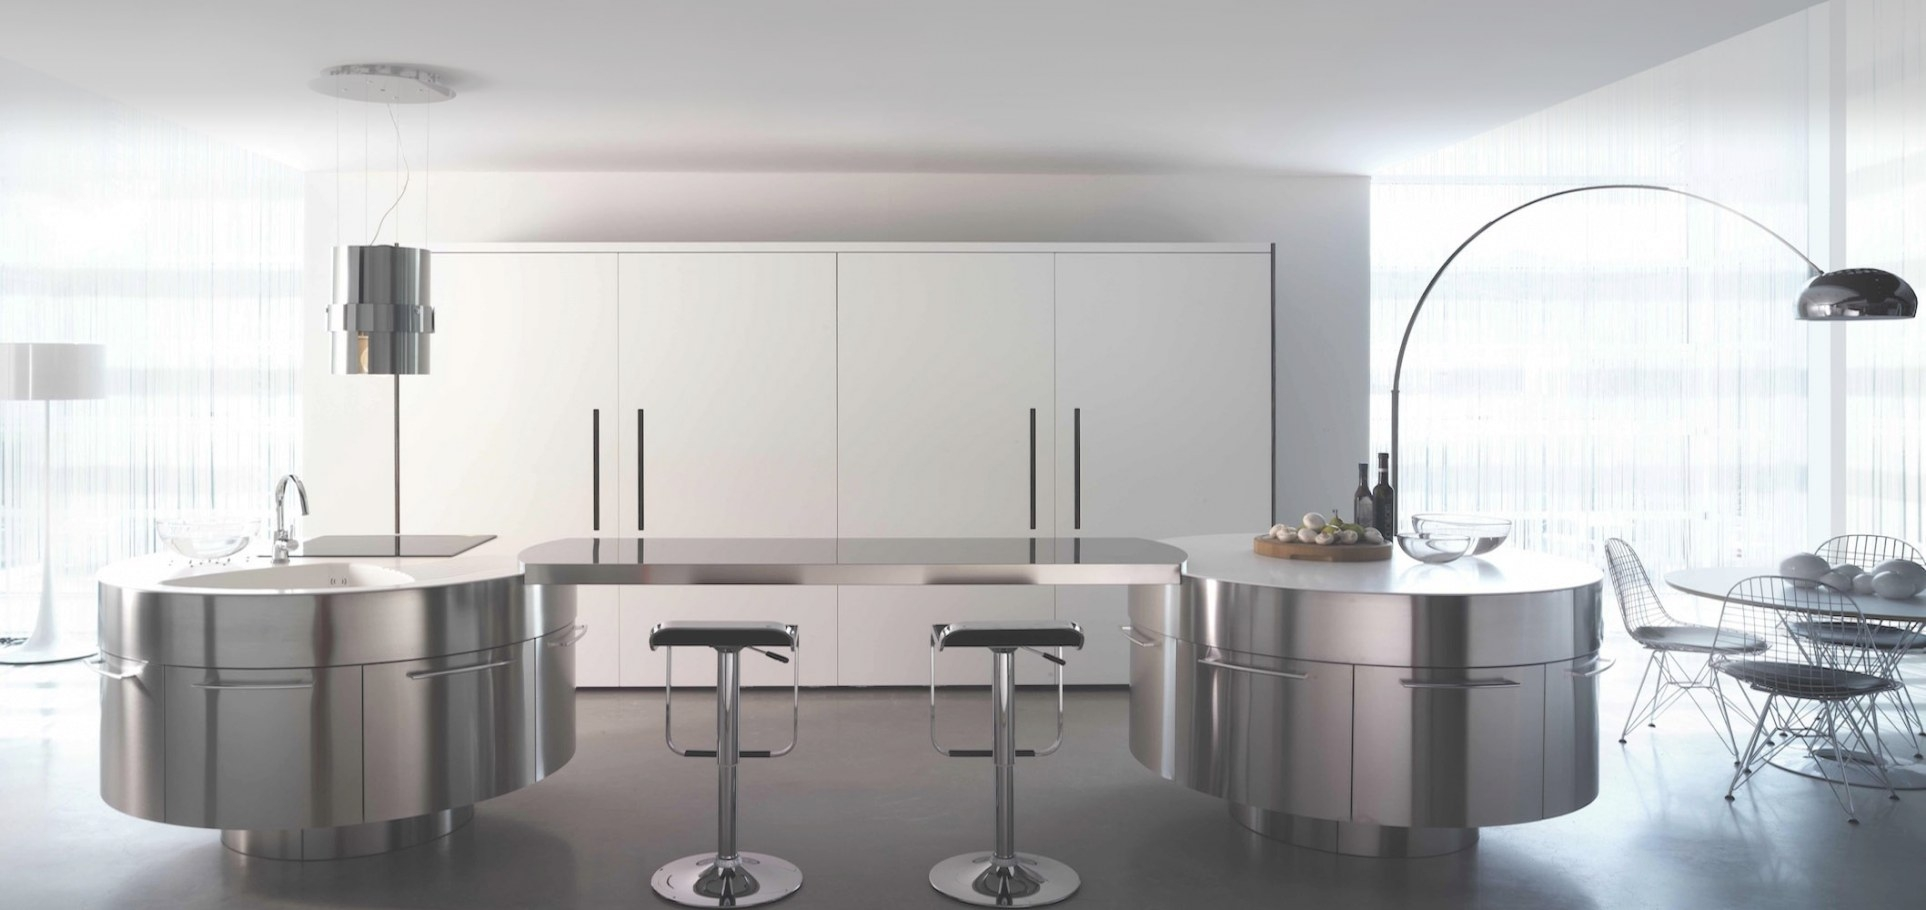 20 State-Of-The-Art Modern Kitchen Designsreeva Design intended for State Of The Art Kitchen